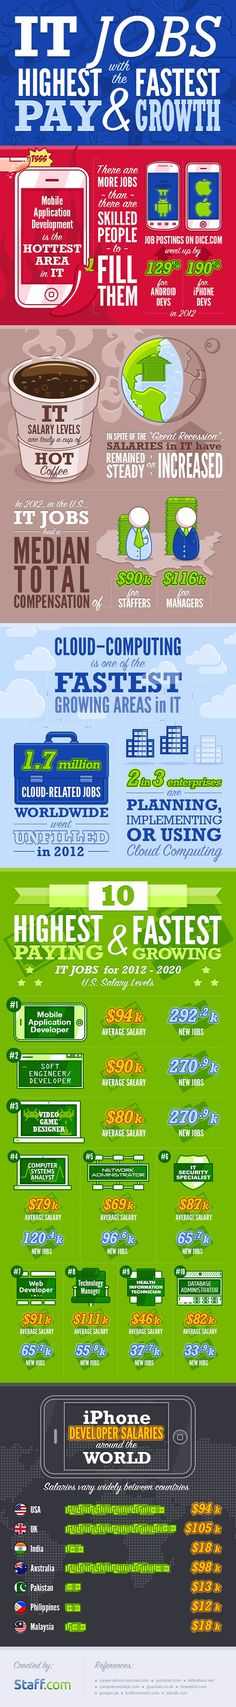 IT Jobs with the Highest Pay and Fastest Growth Infographic